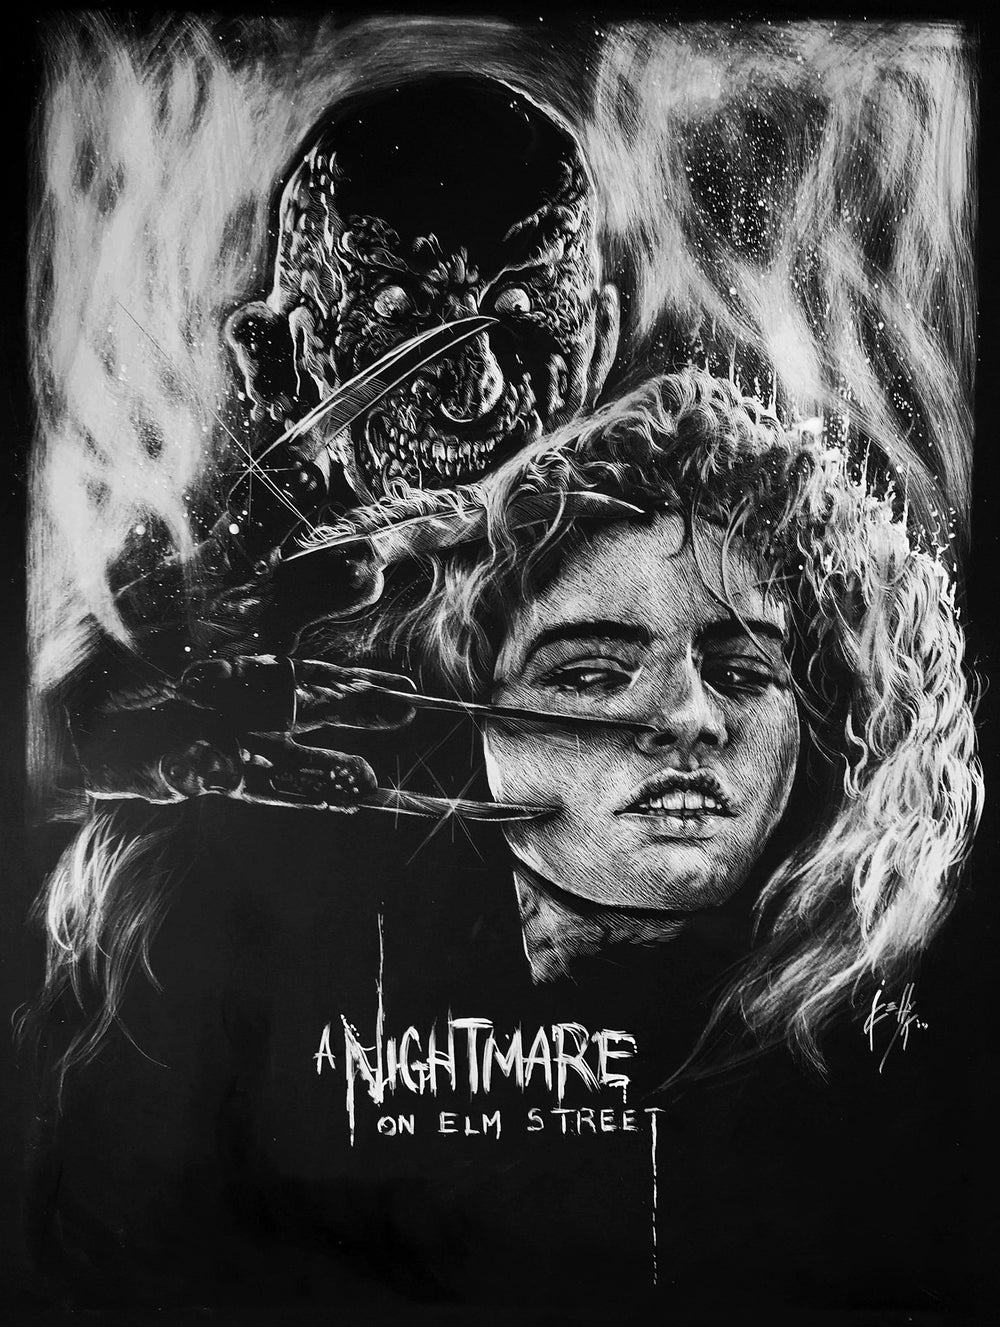 A NIGHTMARE ON ELM STREET Limited Edition 2019 FLASHBACK WEEKEND Exclusive poster